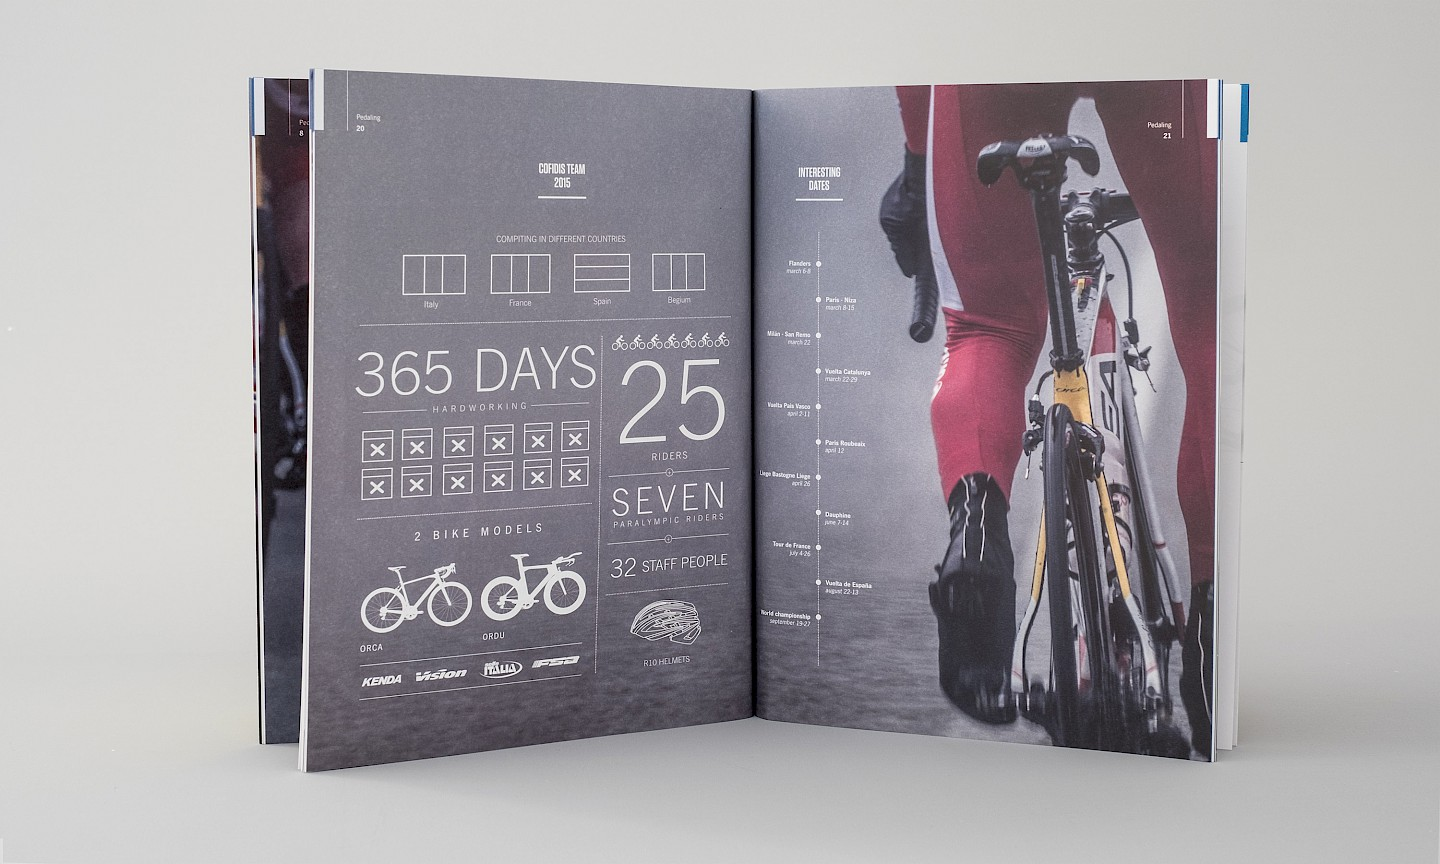 09 sports magazine move spaces branding print lifestyle orbea design narrative